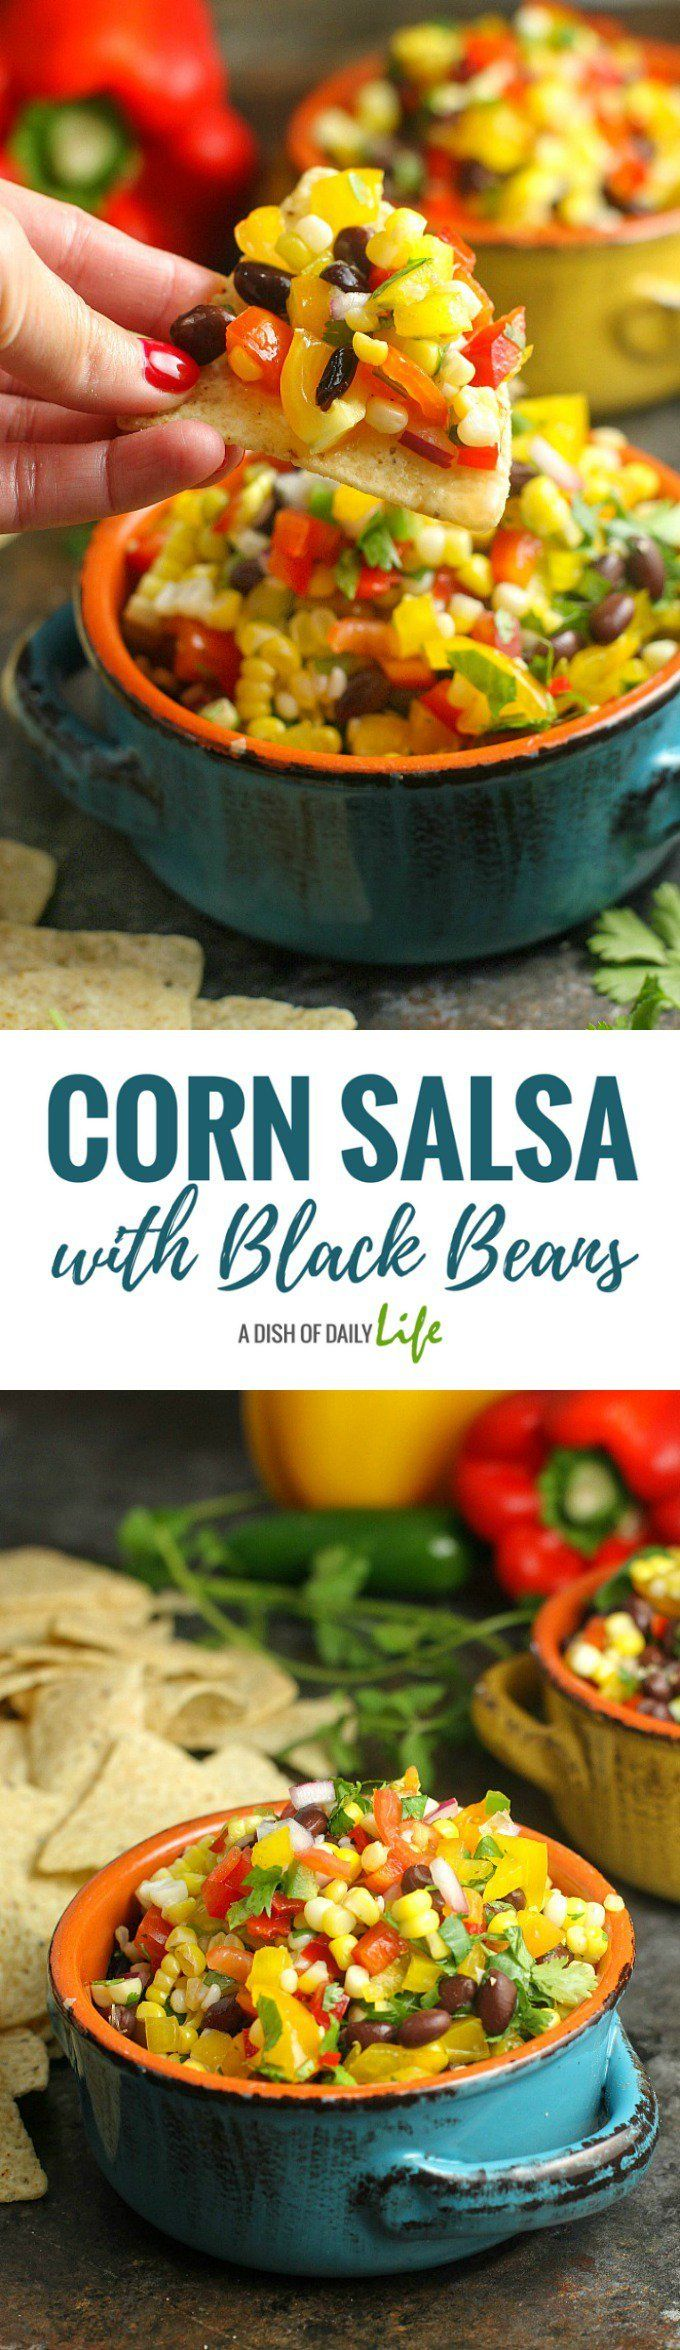 Corn Salsa with Black Beans is the perfect party appetizer for summer cookouts and get-togethers...serve it with chips or as a salad side dish! Easy to make and healthy as well! Appetizer | Summer side dishes | Salad | Corn | Salsa | Mexican | Healthy | BBQ side dishes | Recipes for parties